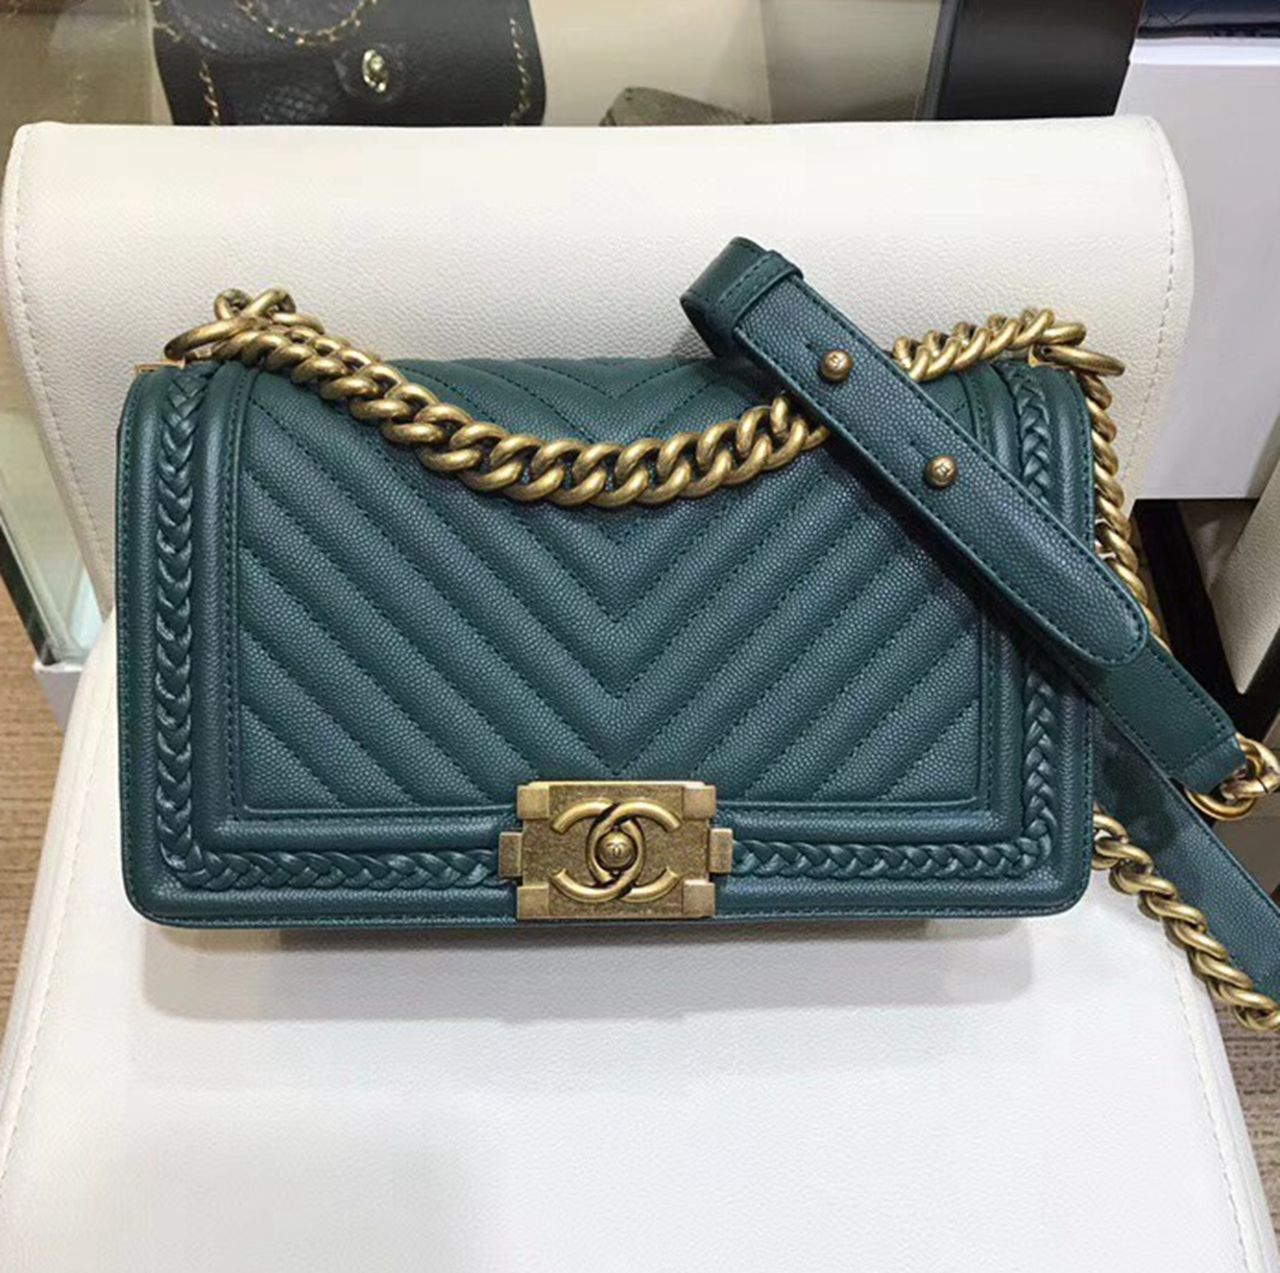 3ddfa4781b95 Chanel Chevron Boy Braided Old Medium Flap Bag A67086 Green Curise 2018